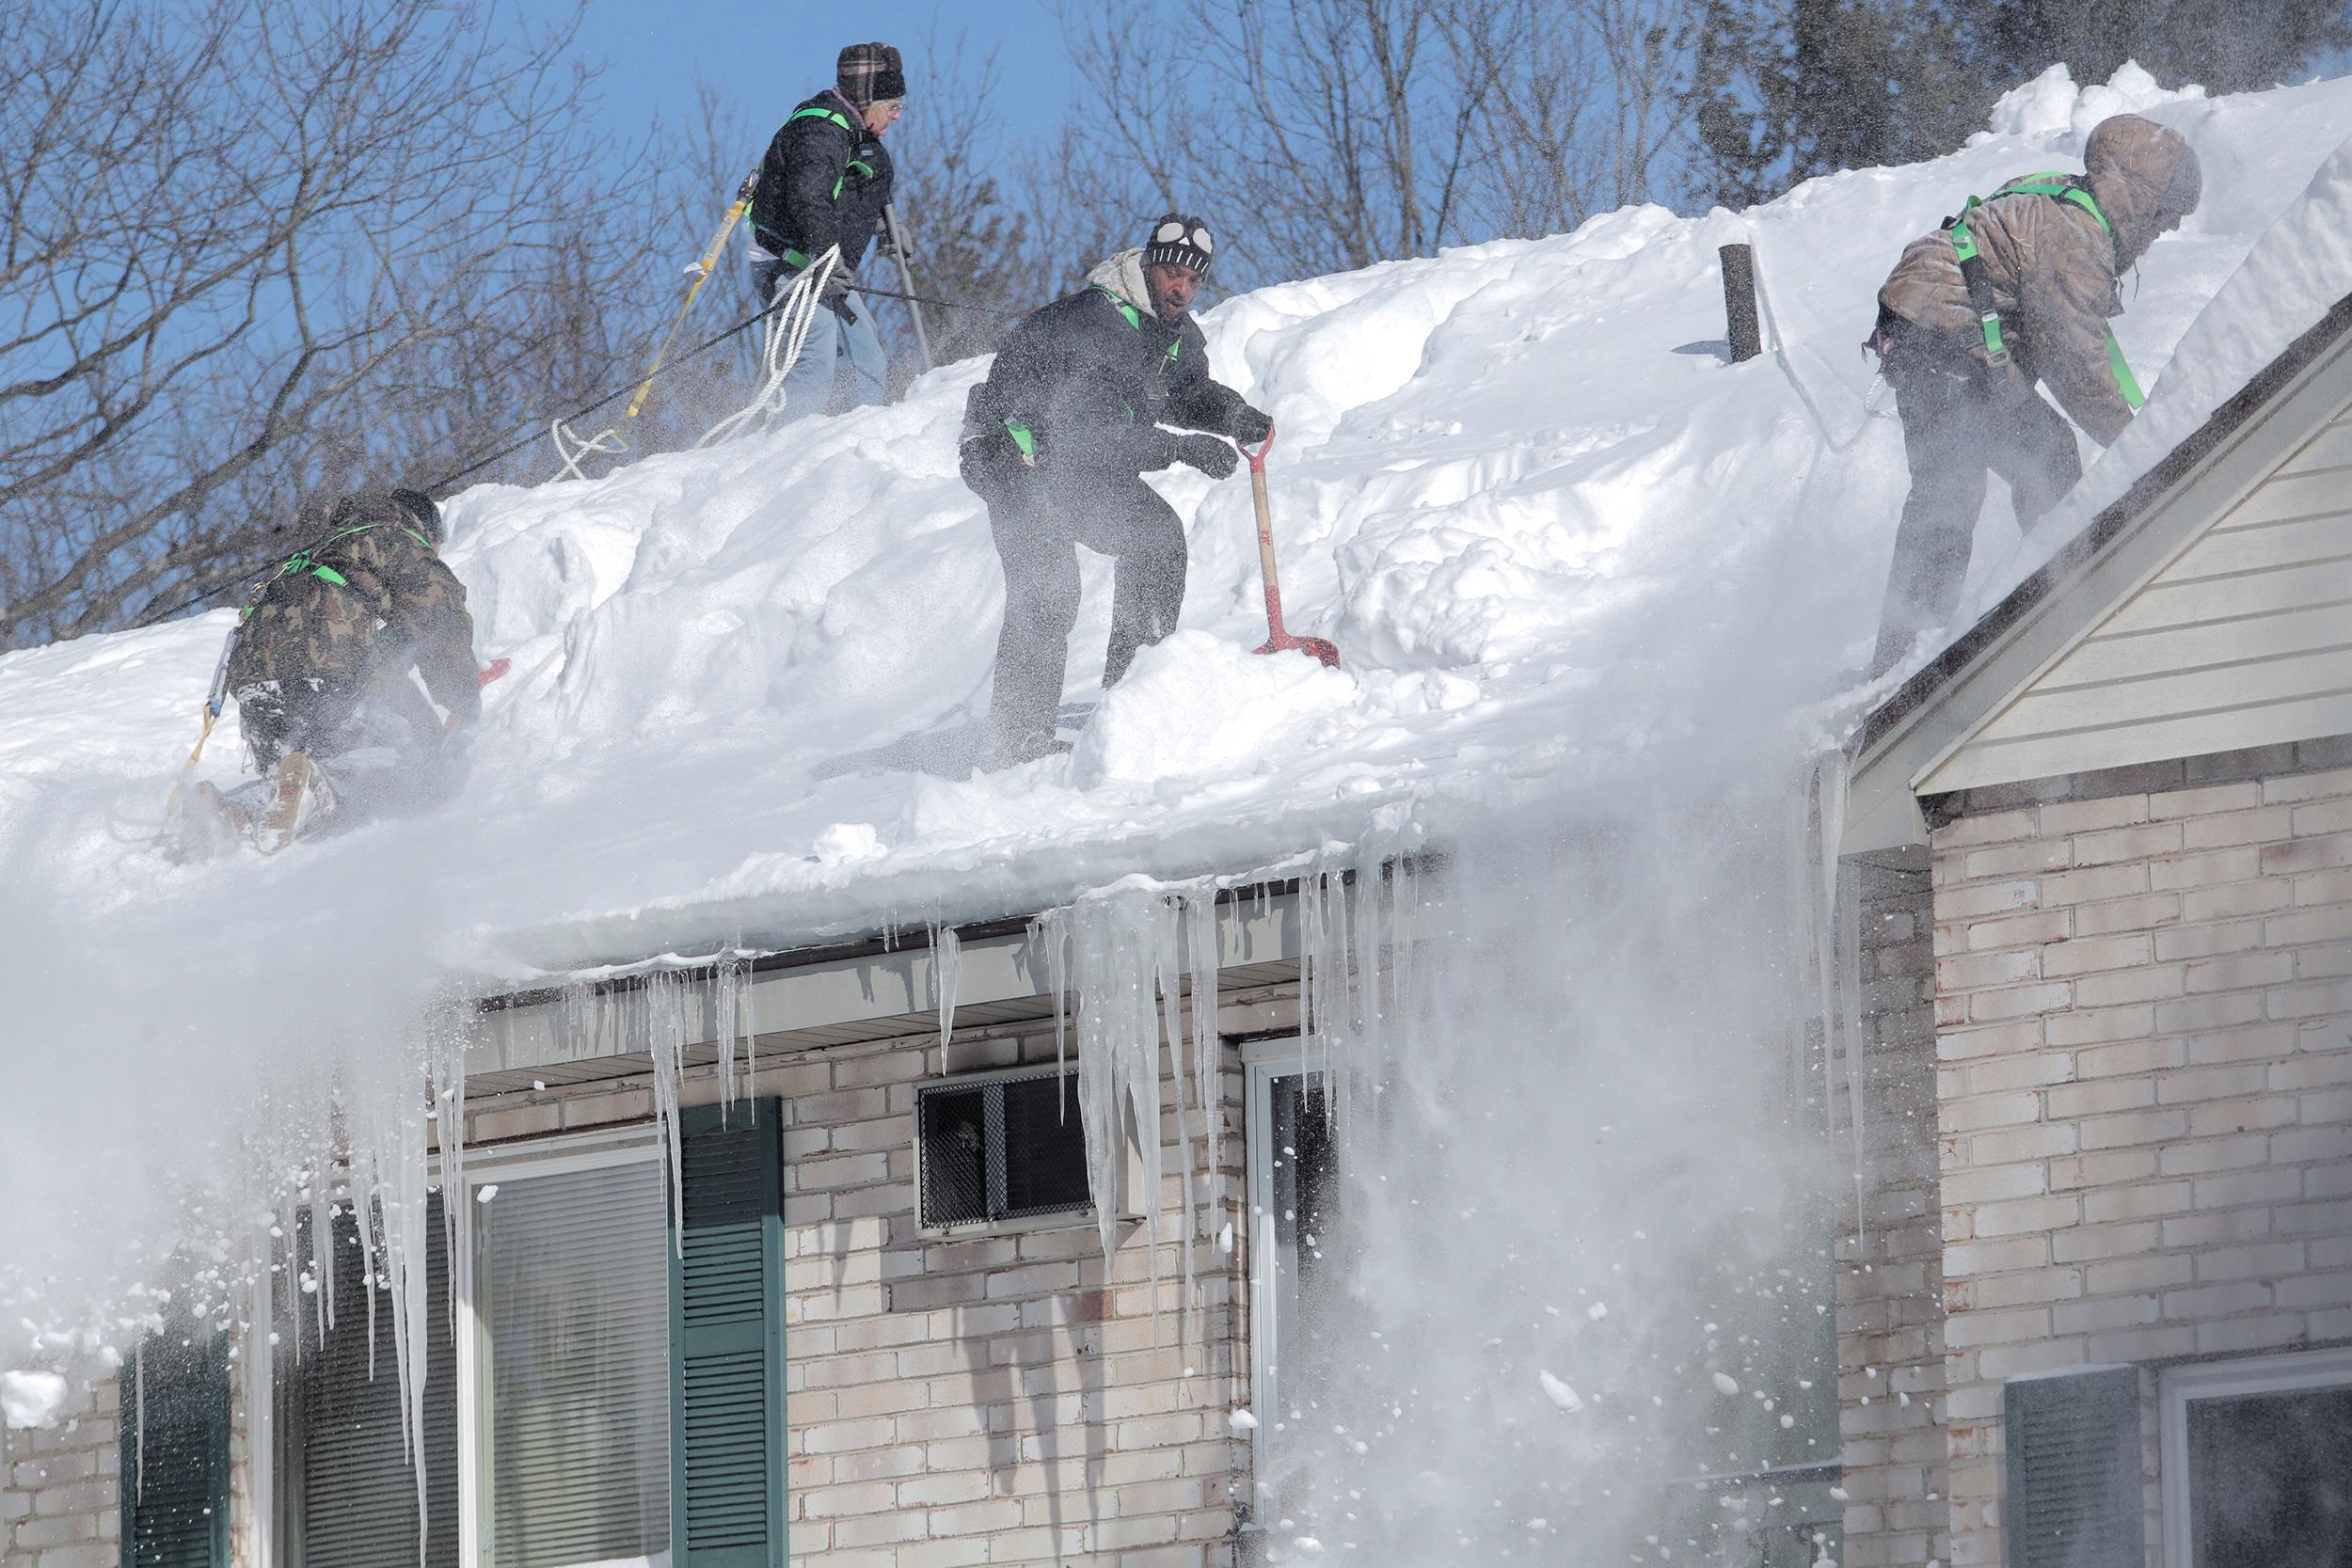 Roof Collapse In Heavy Snow Leaves Struggling Family